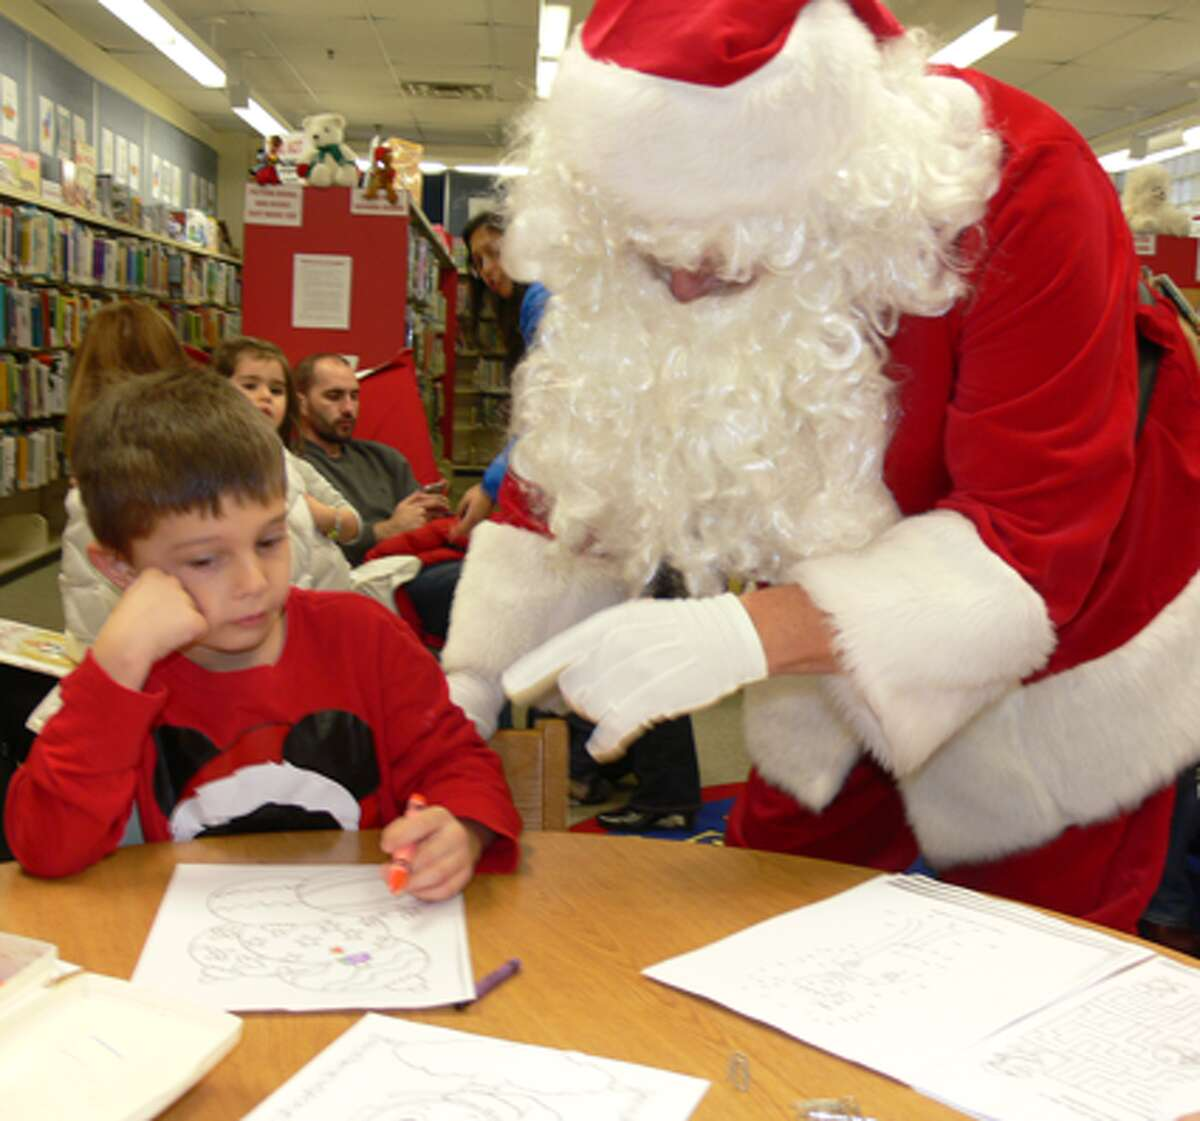 Santa compliments a drawing by a youngster during the event at the Huntington Branch.